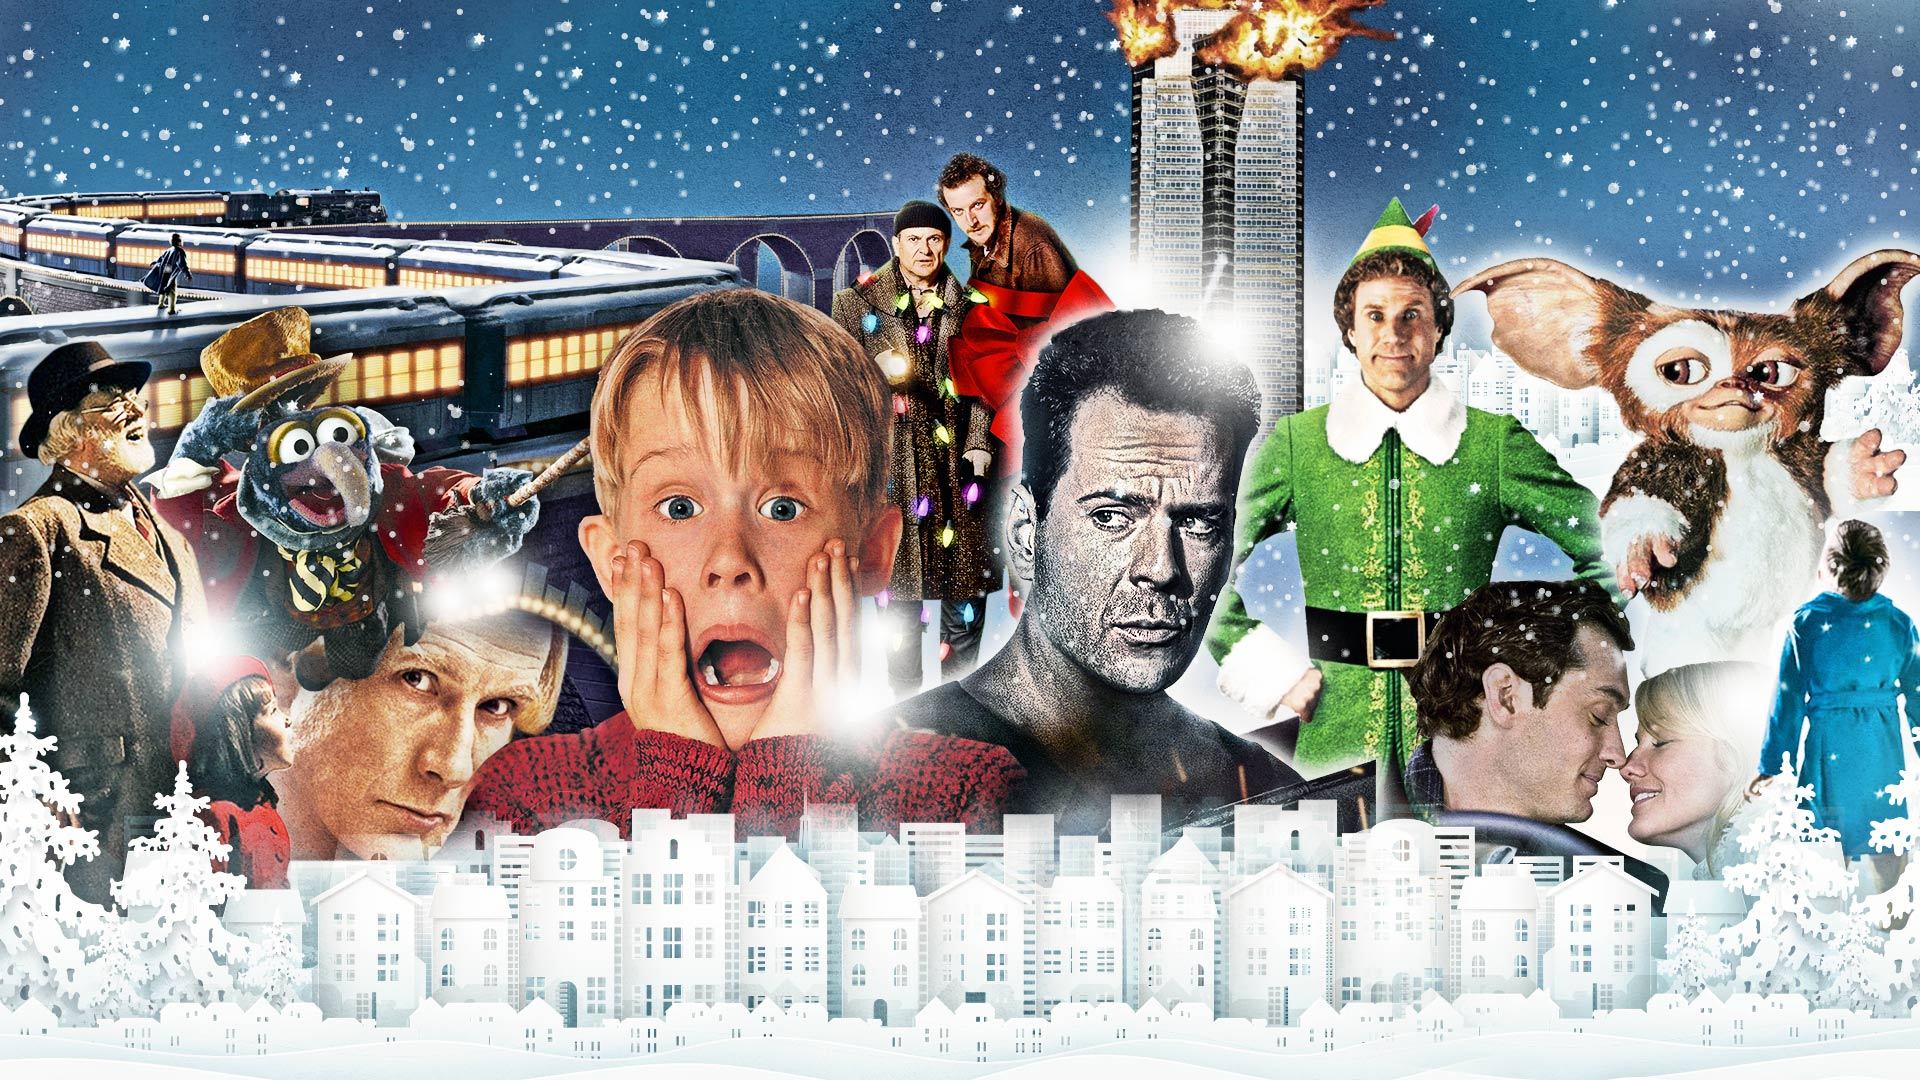 Summer Screens launches new winter popup cinema this Christmas!